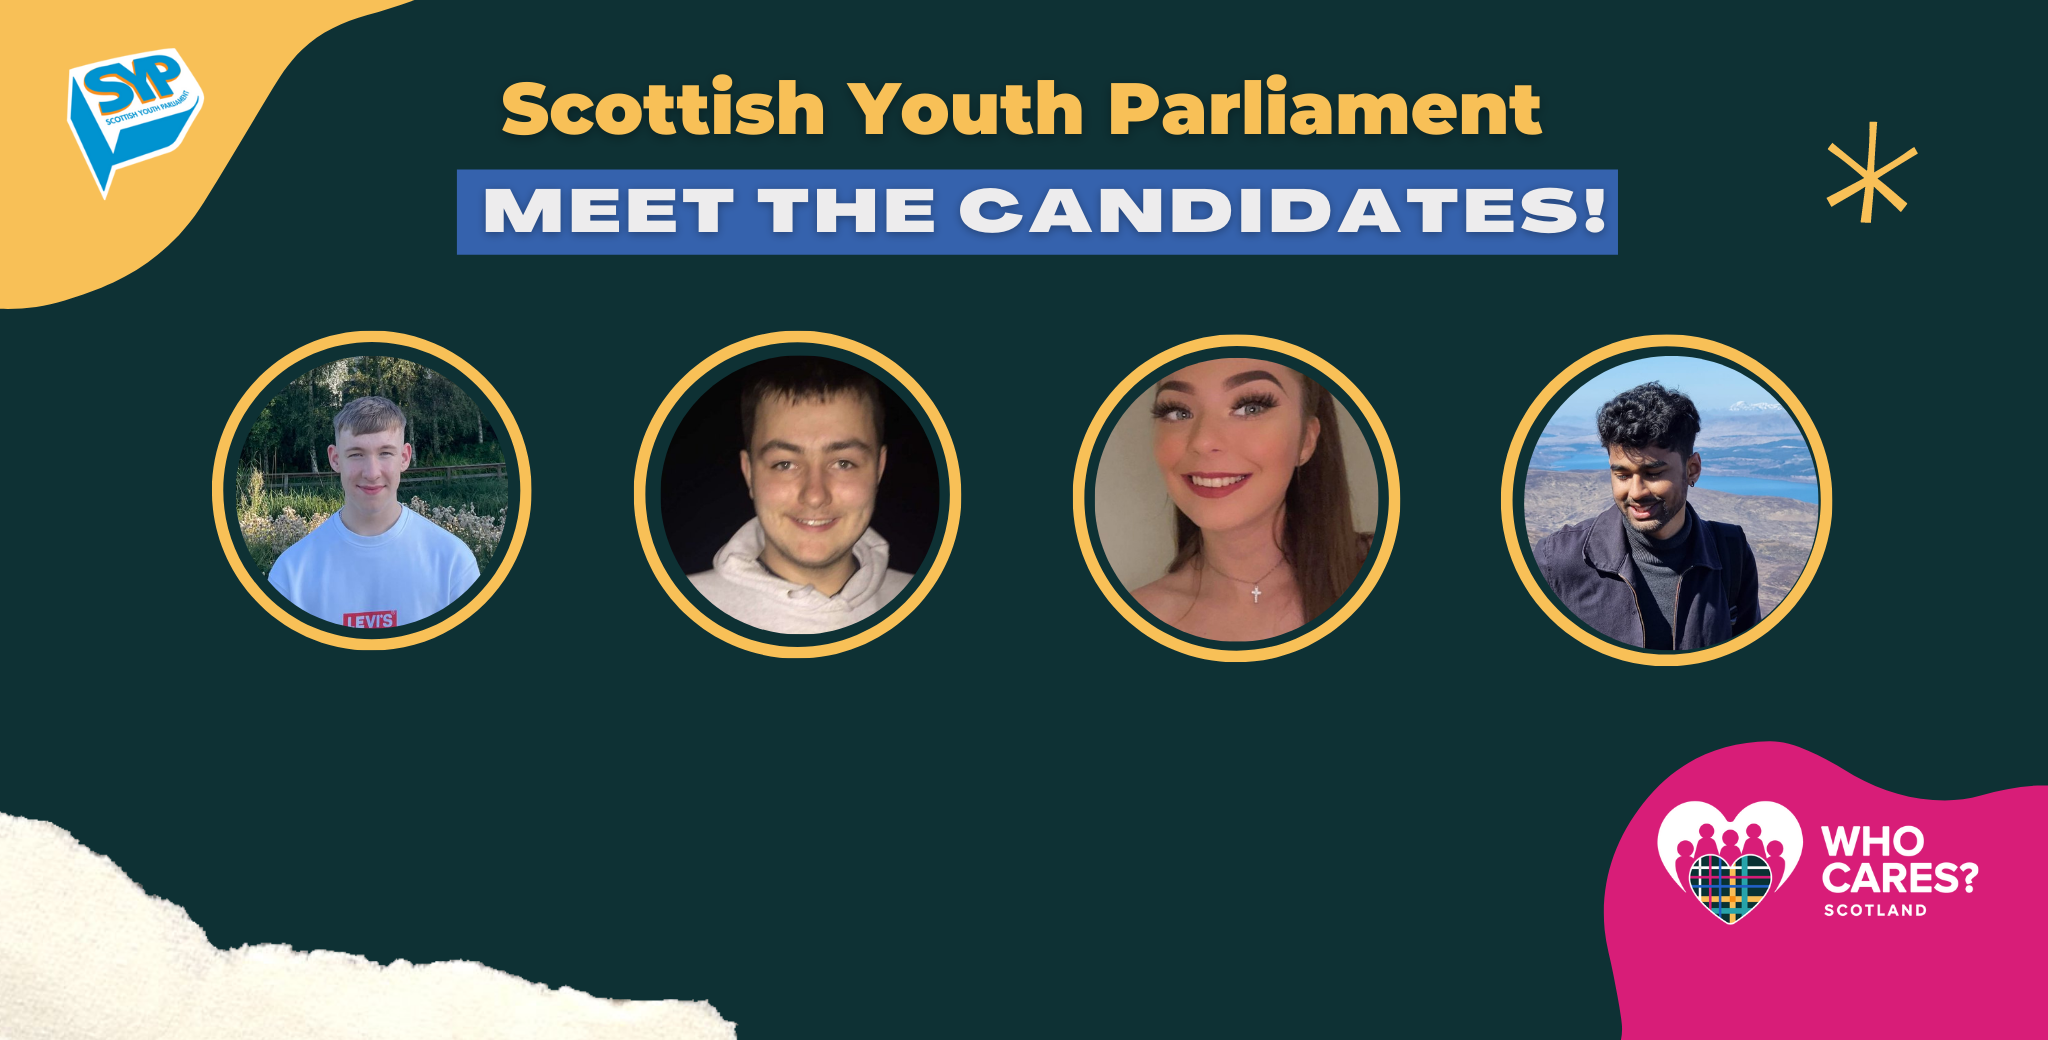 SYP – Meet the Candidates!